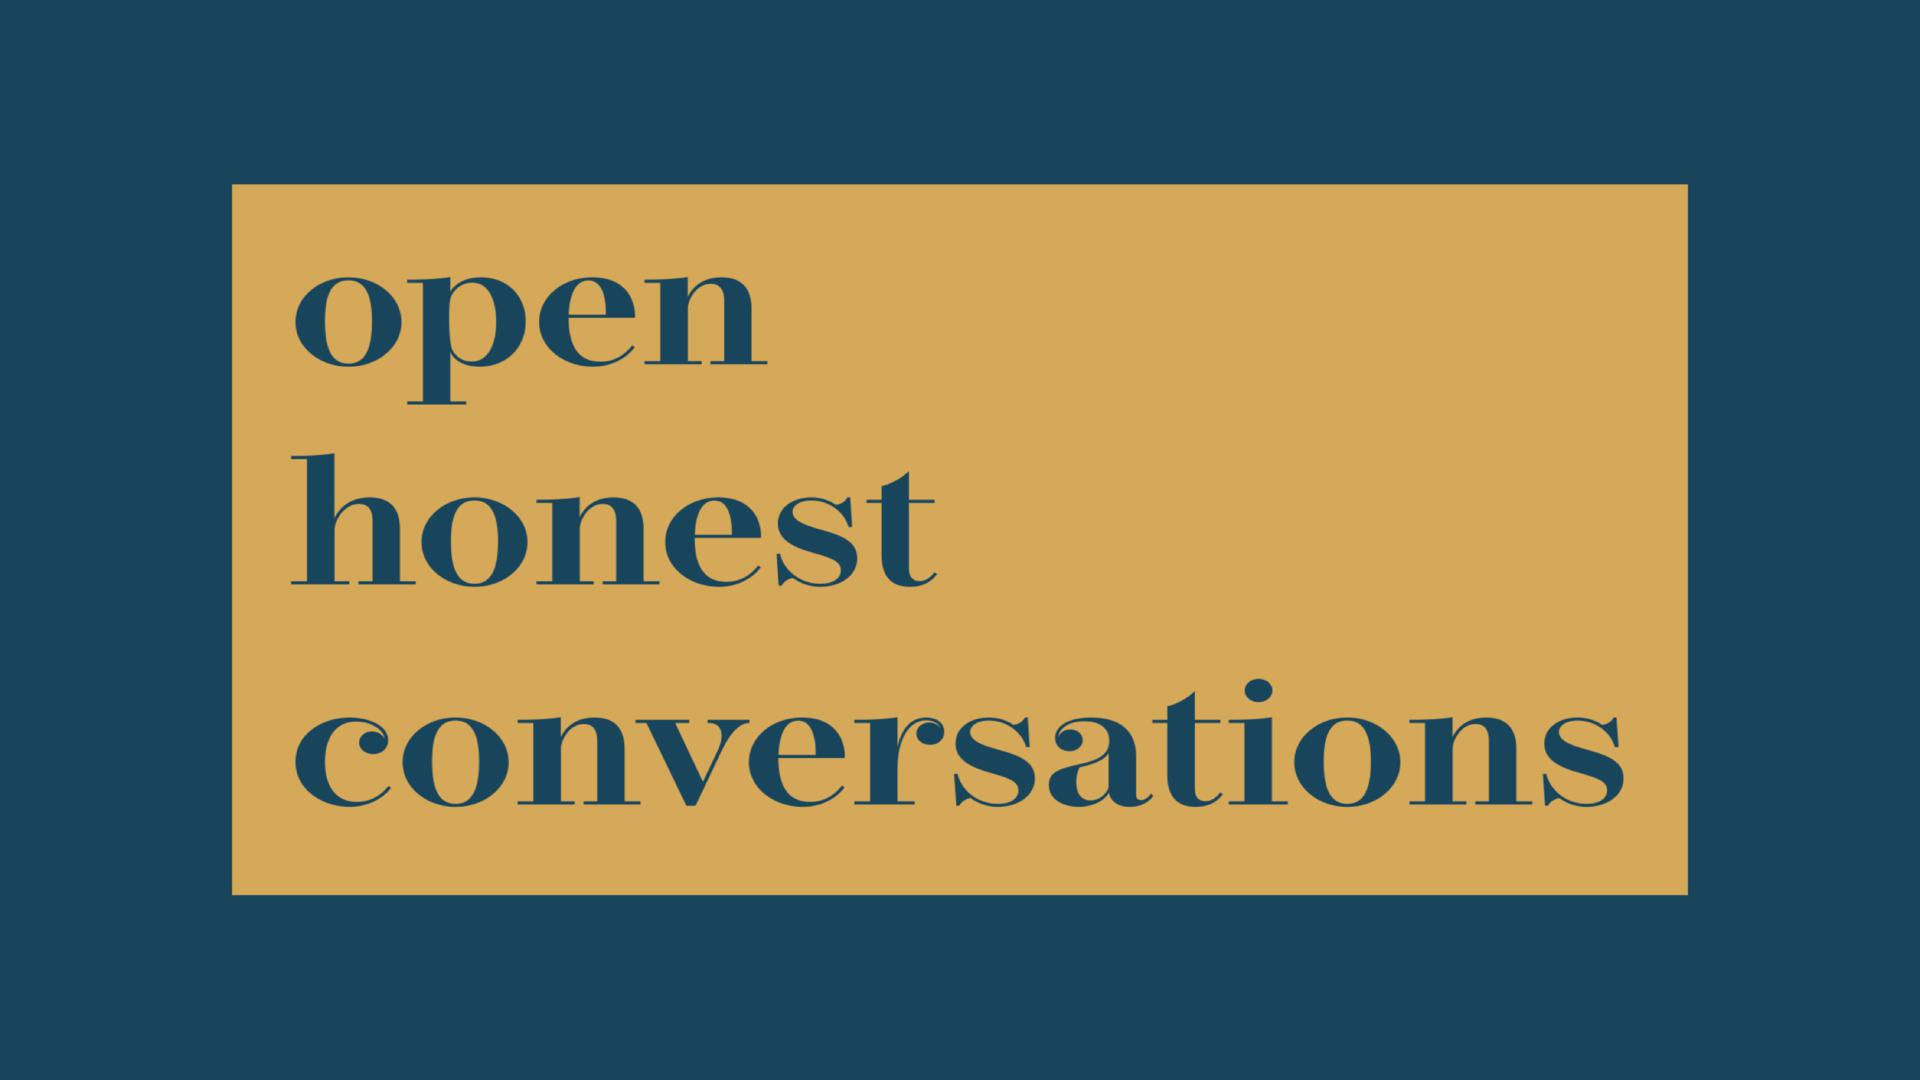 Open Honest Conversations